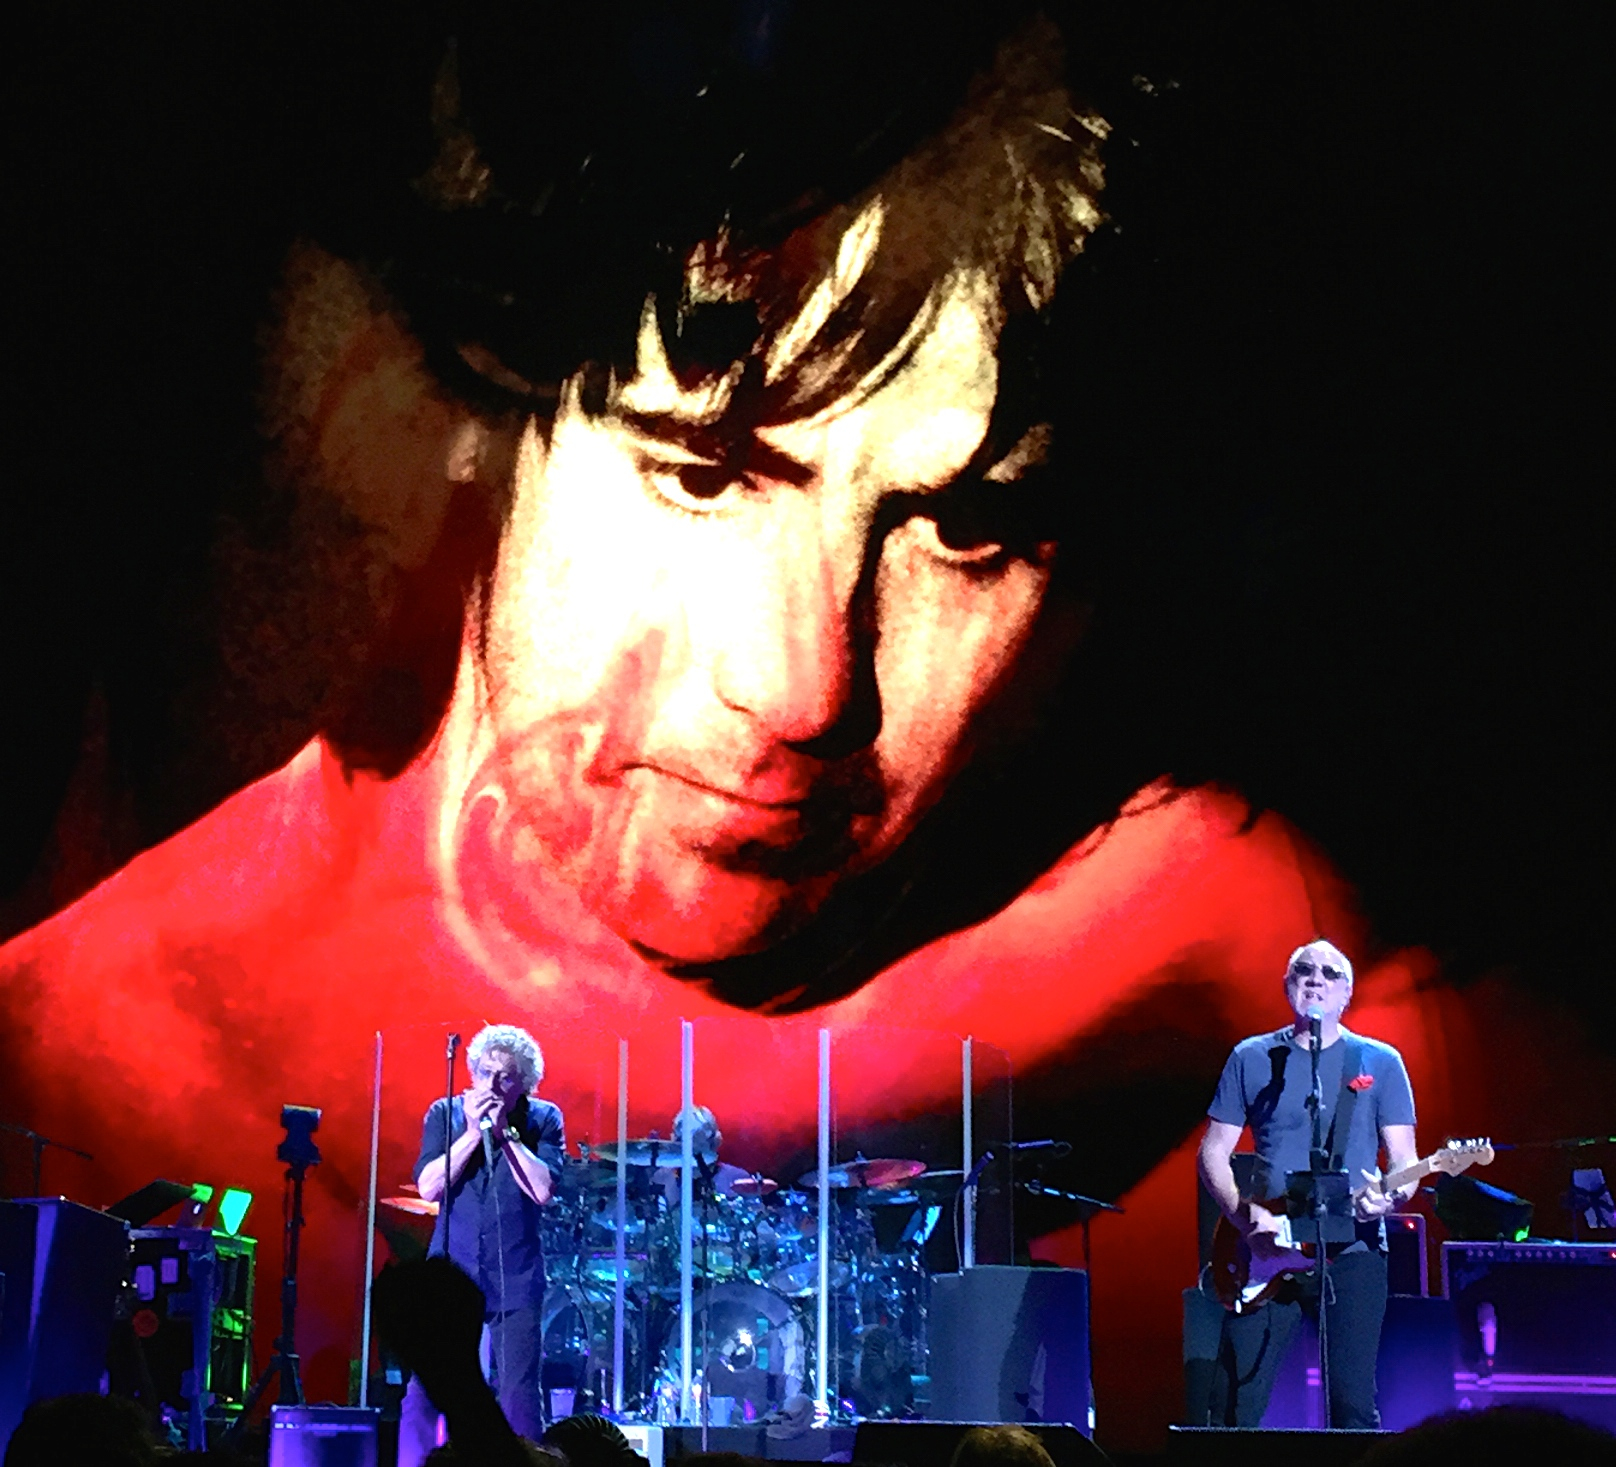 Keith & John were not just there in images but spirit/Photo by Daniel Carney